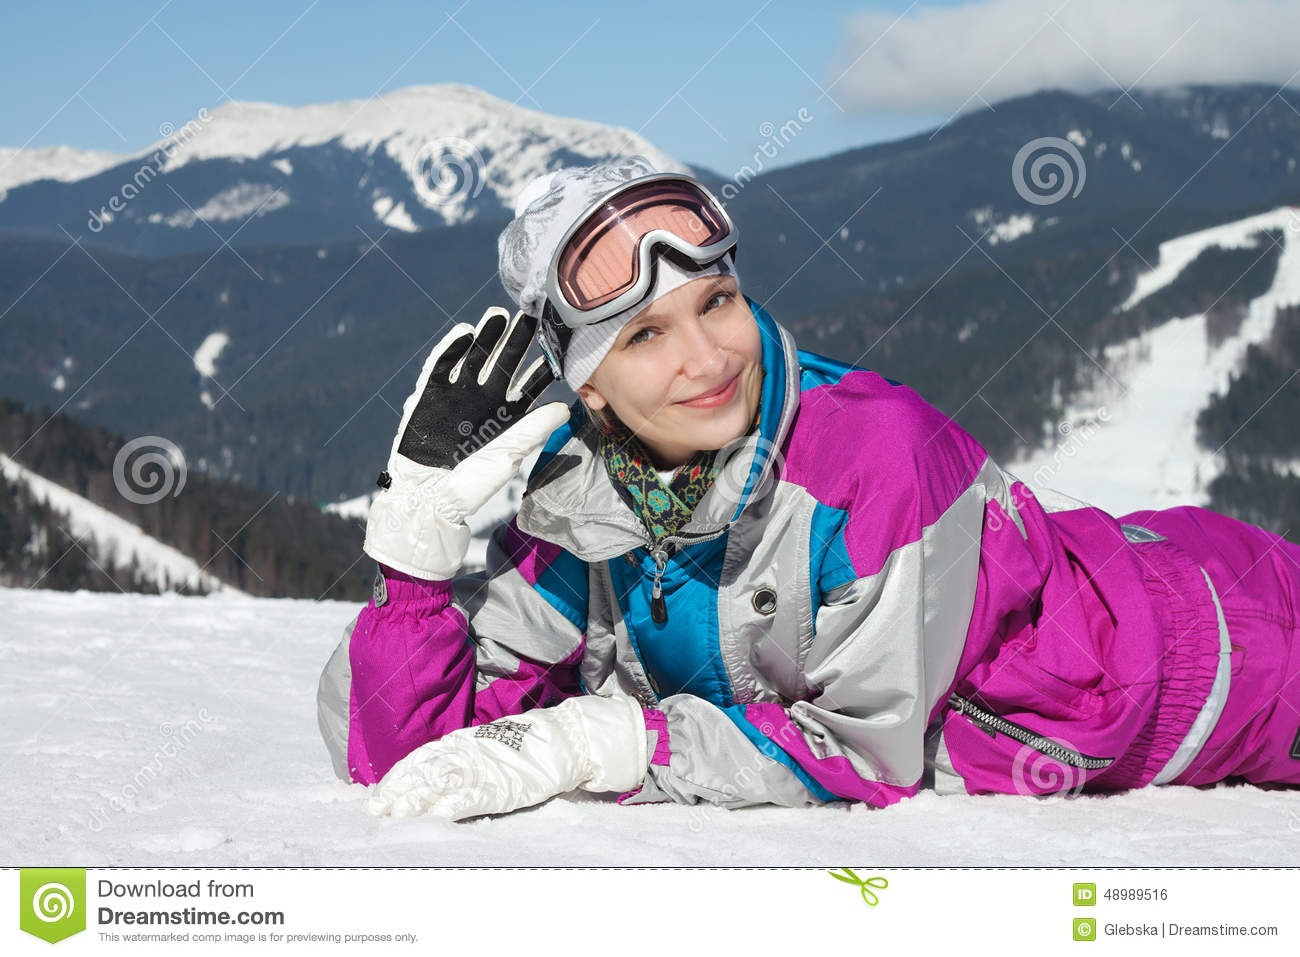 Beautiful Young Girl In Ski Suit Lying In The Snow Stock Photo ... b70ba21c5